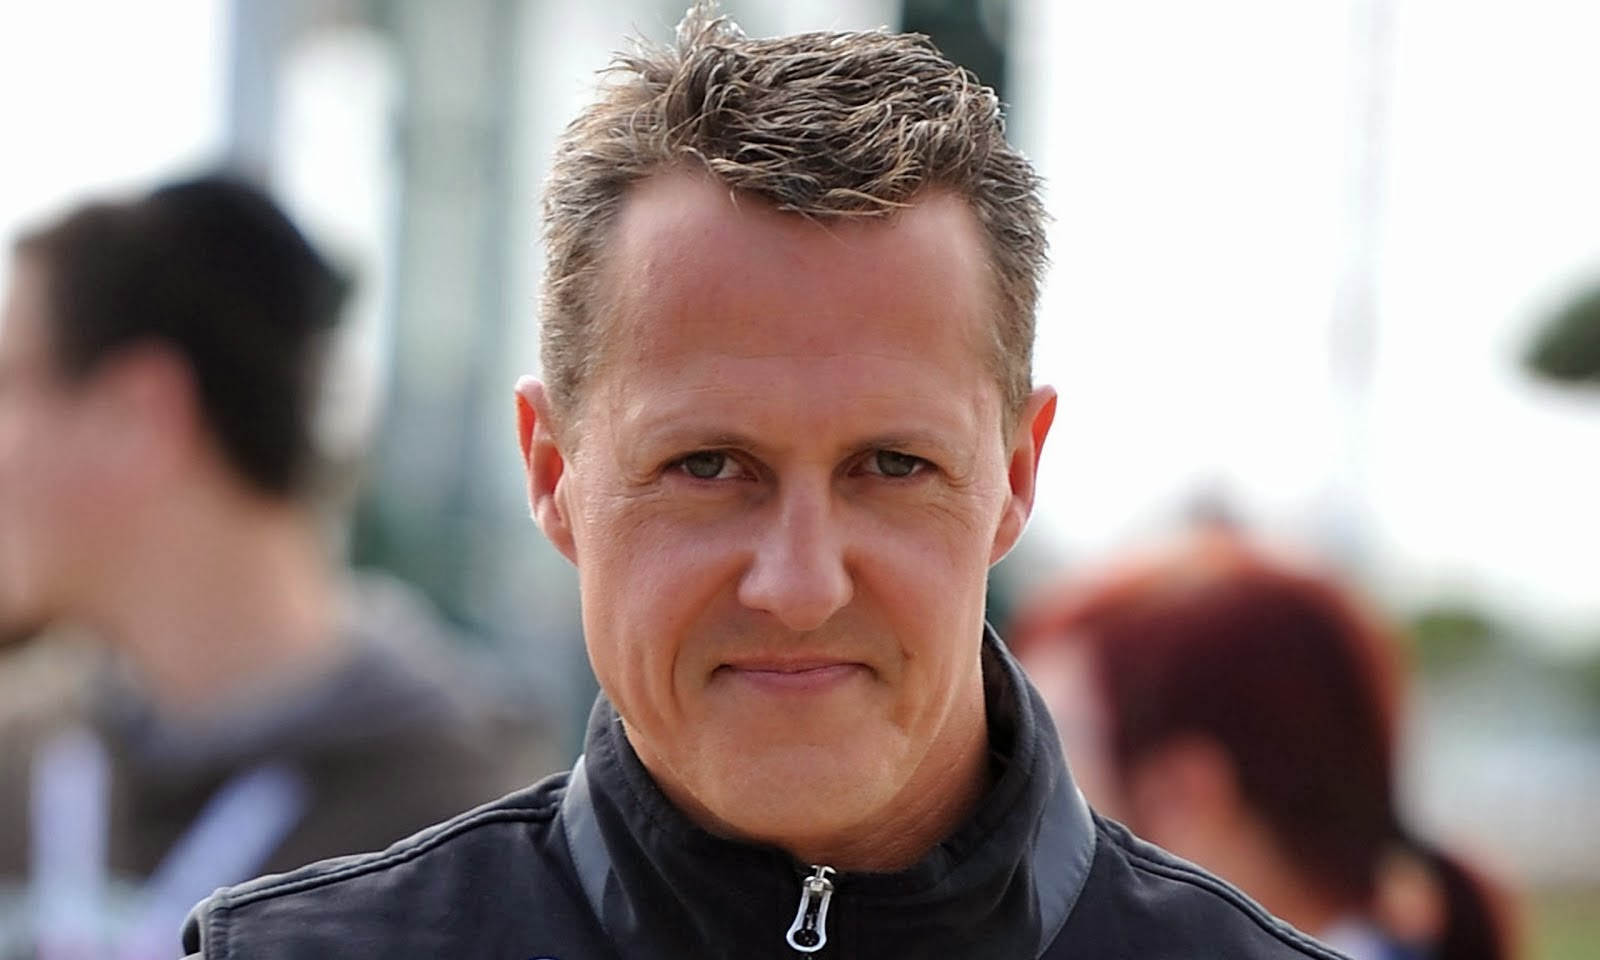 #KeepFightingMichael